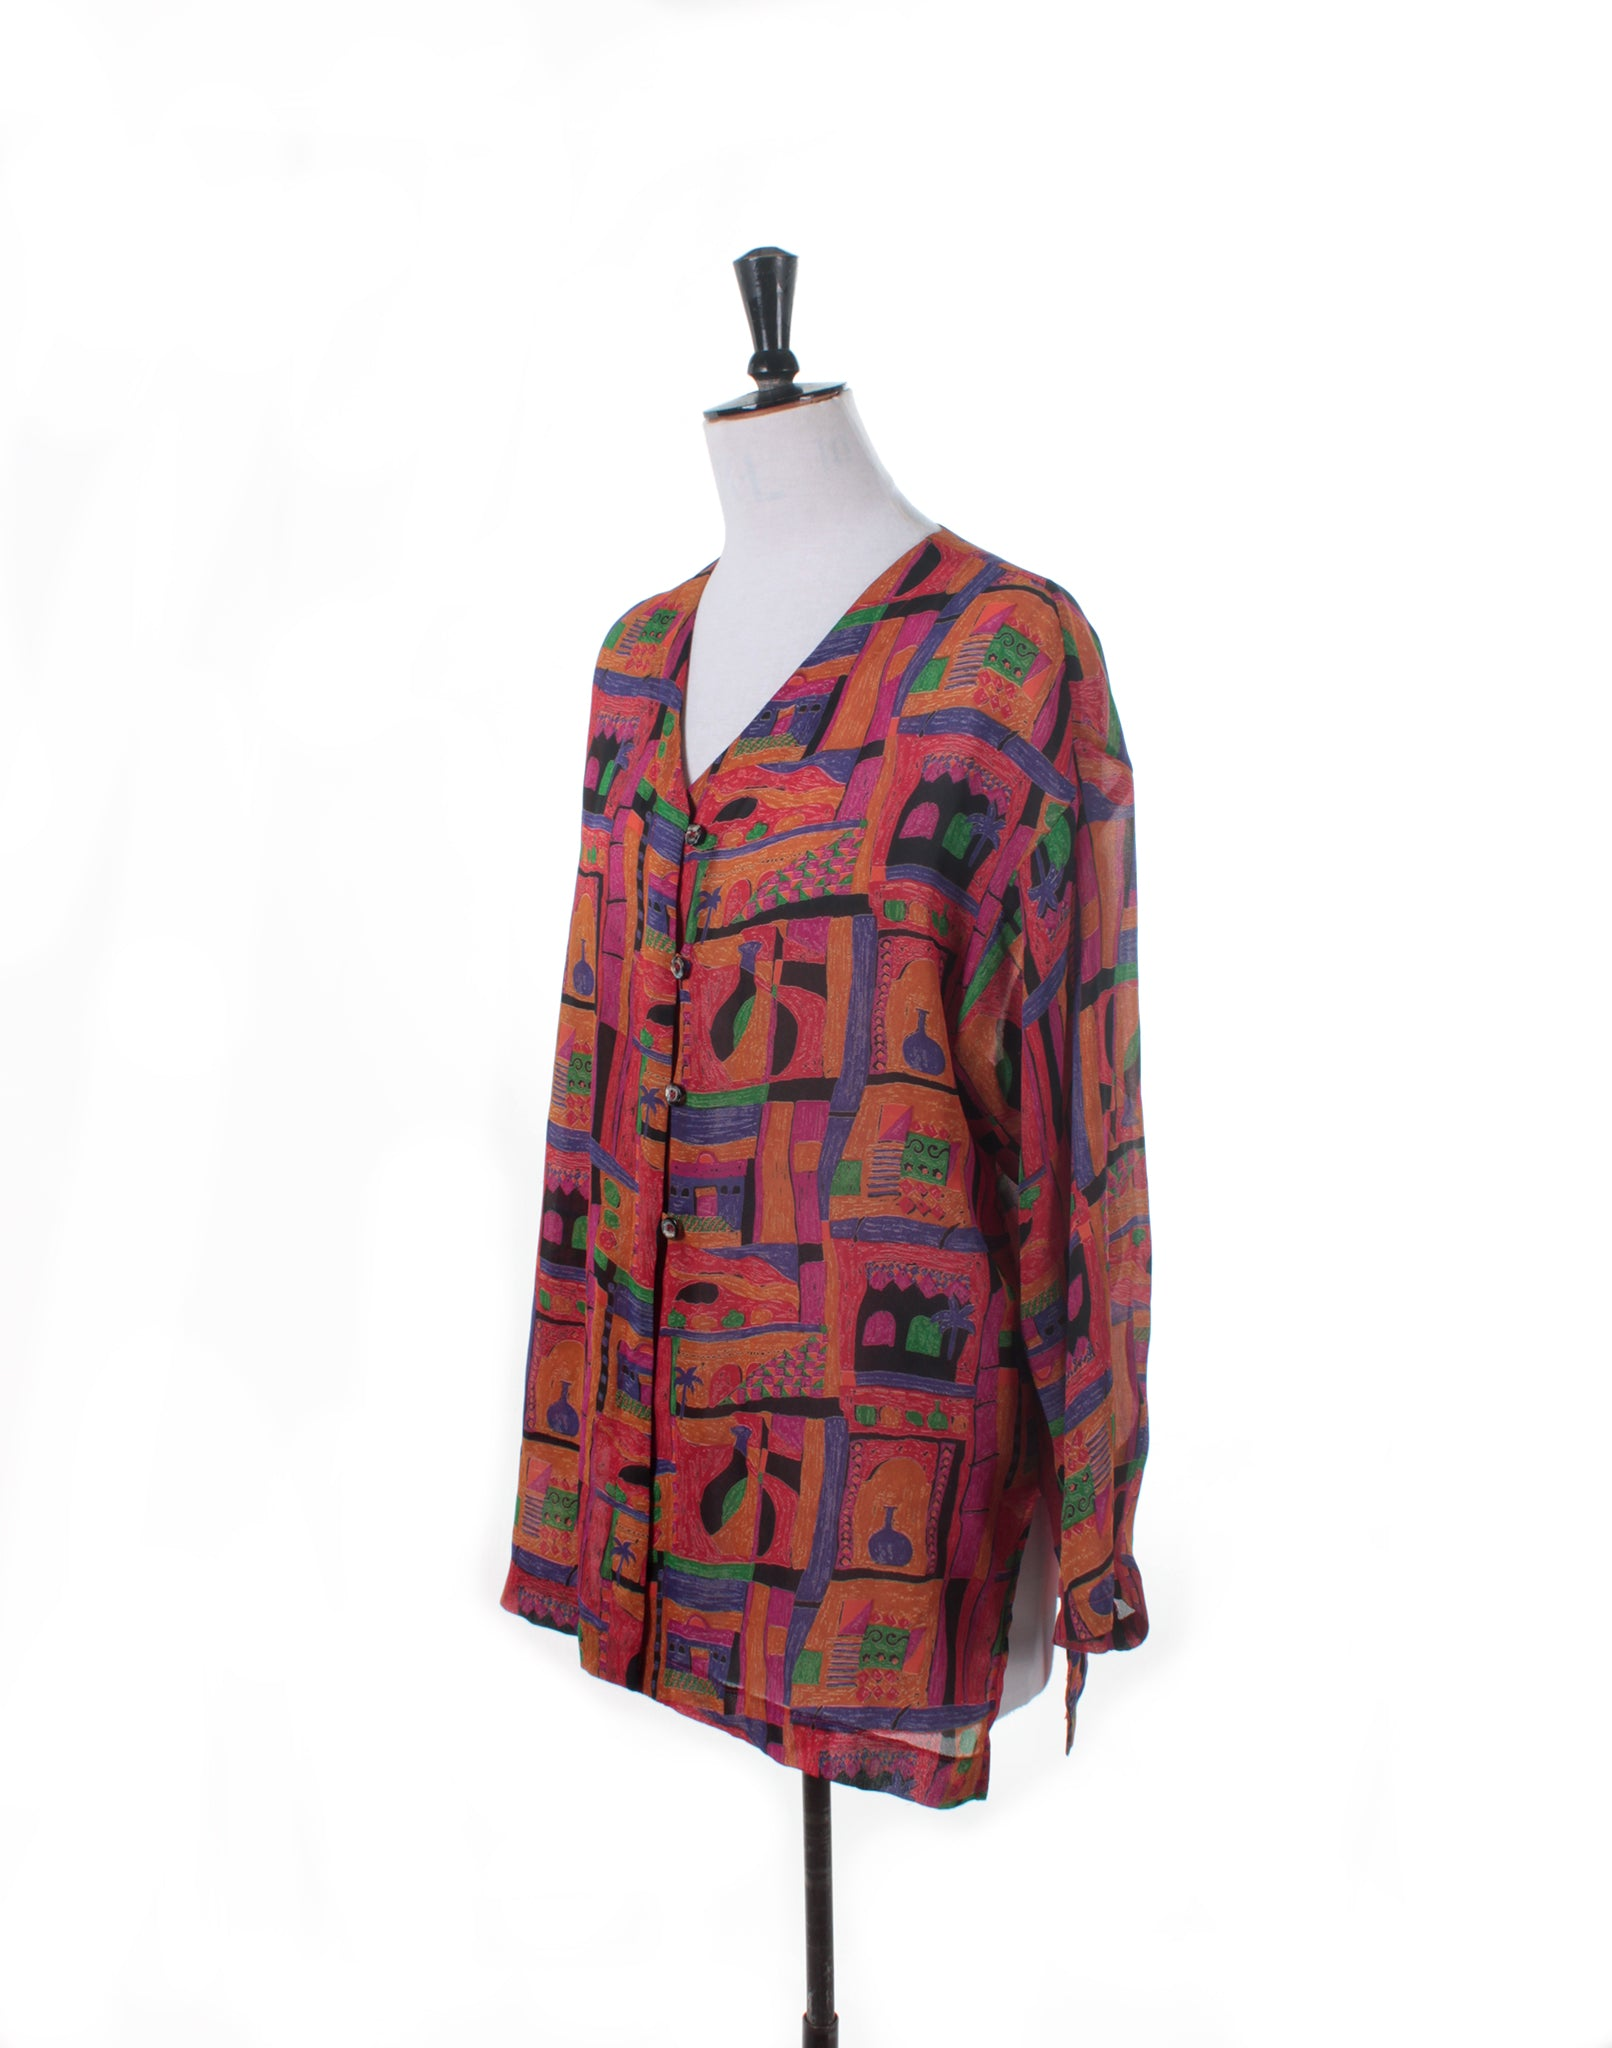 Vintage 80's Bright Coloured Print Shirt